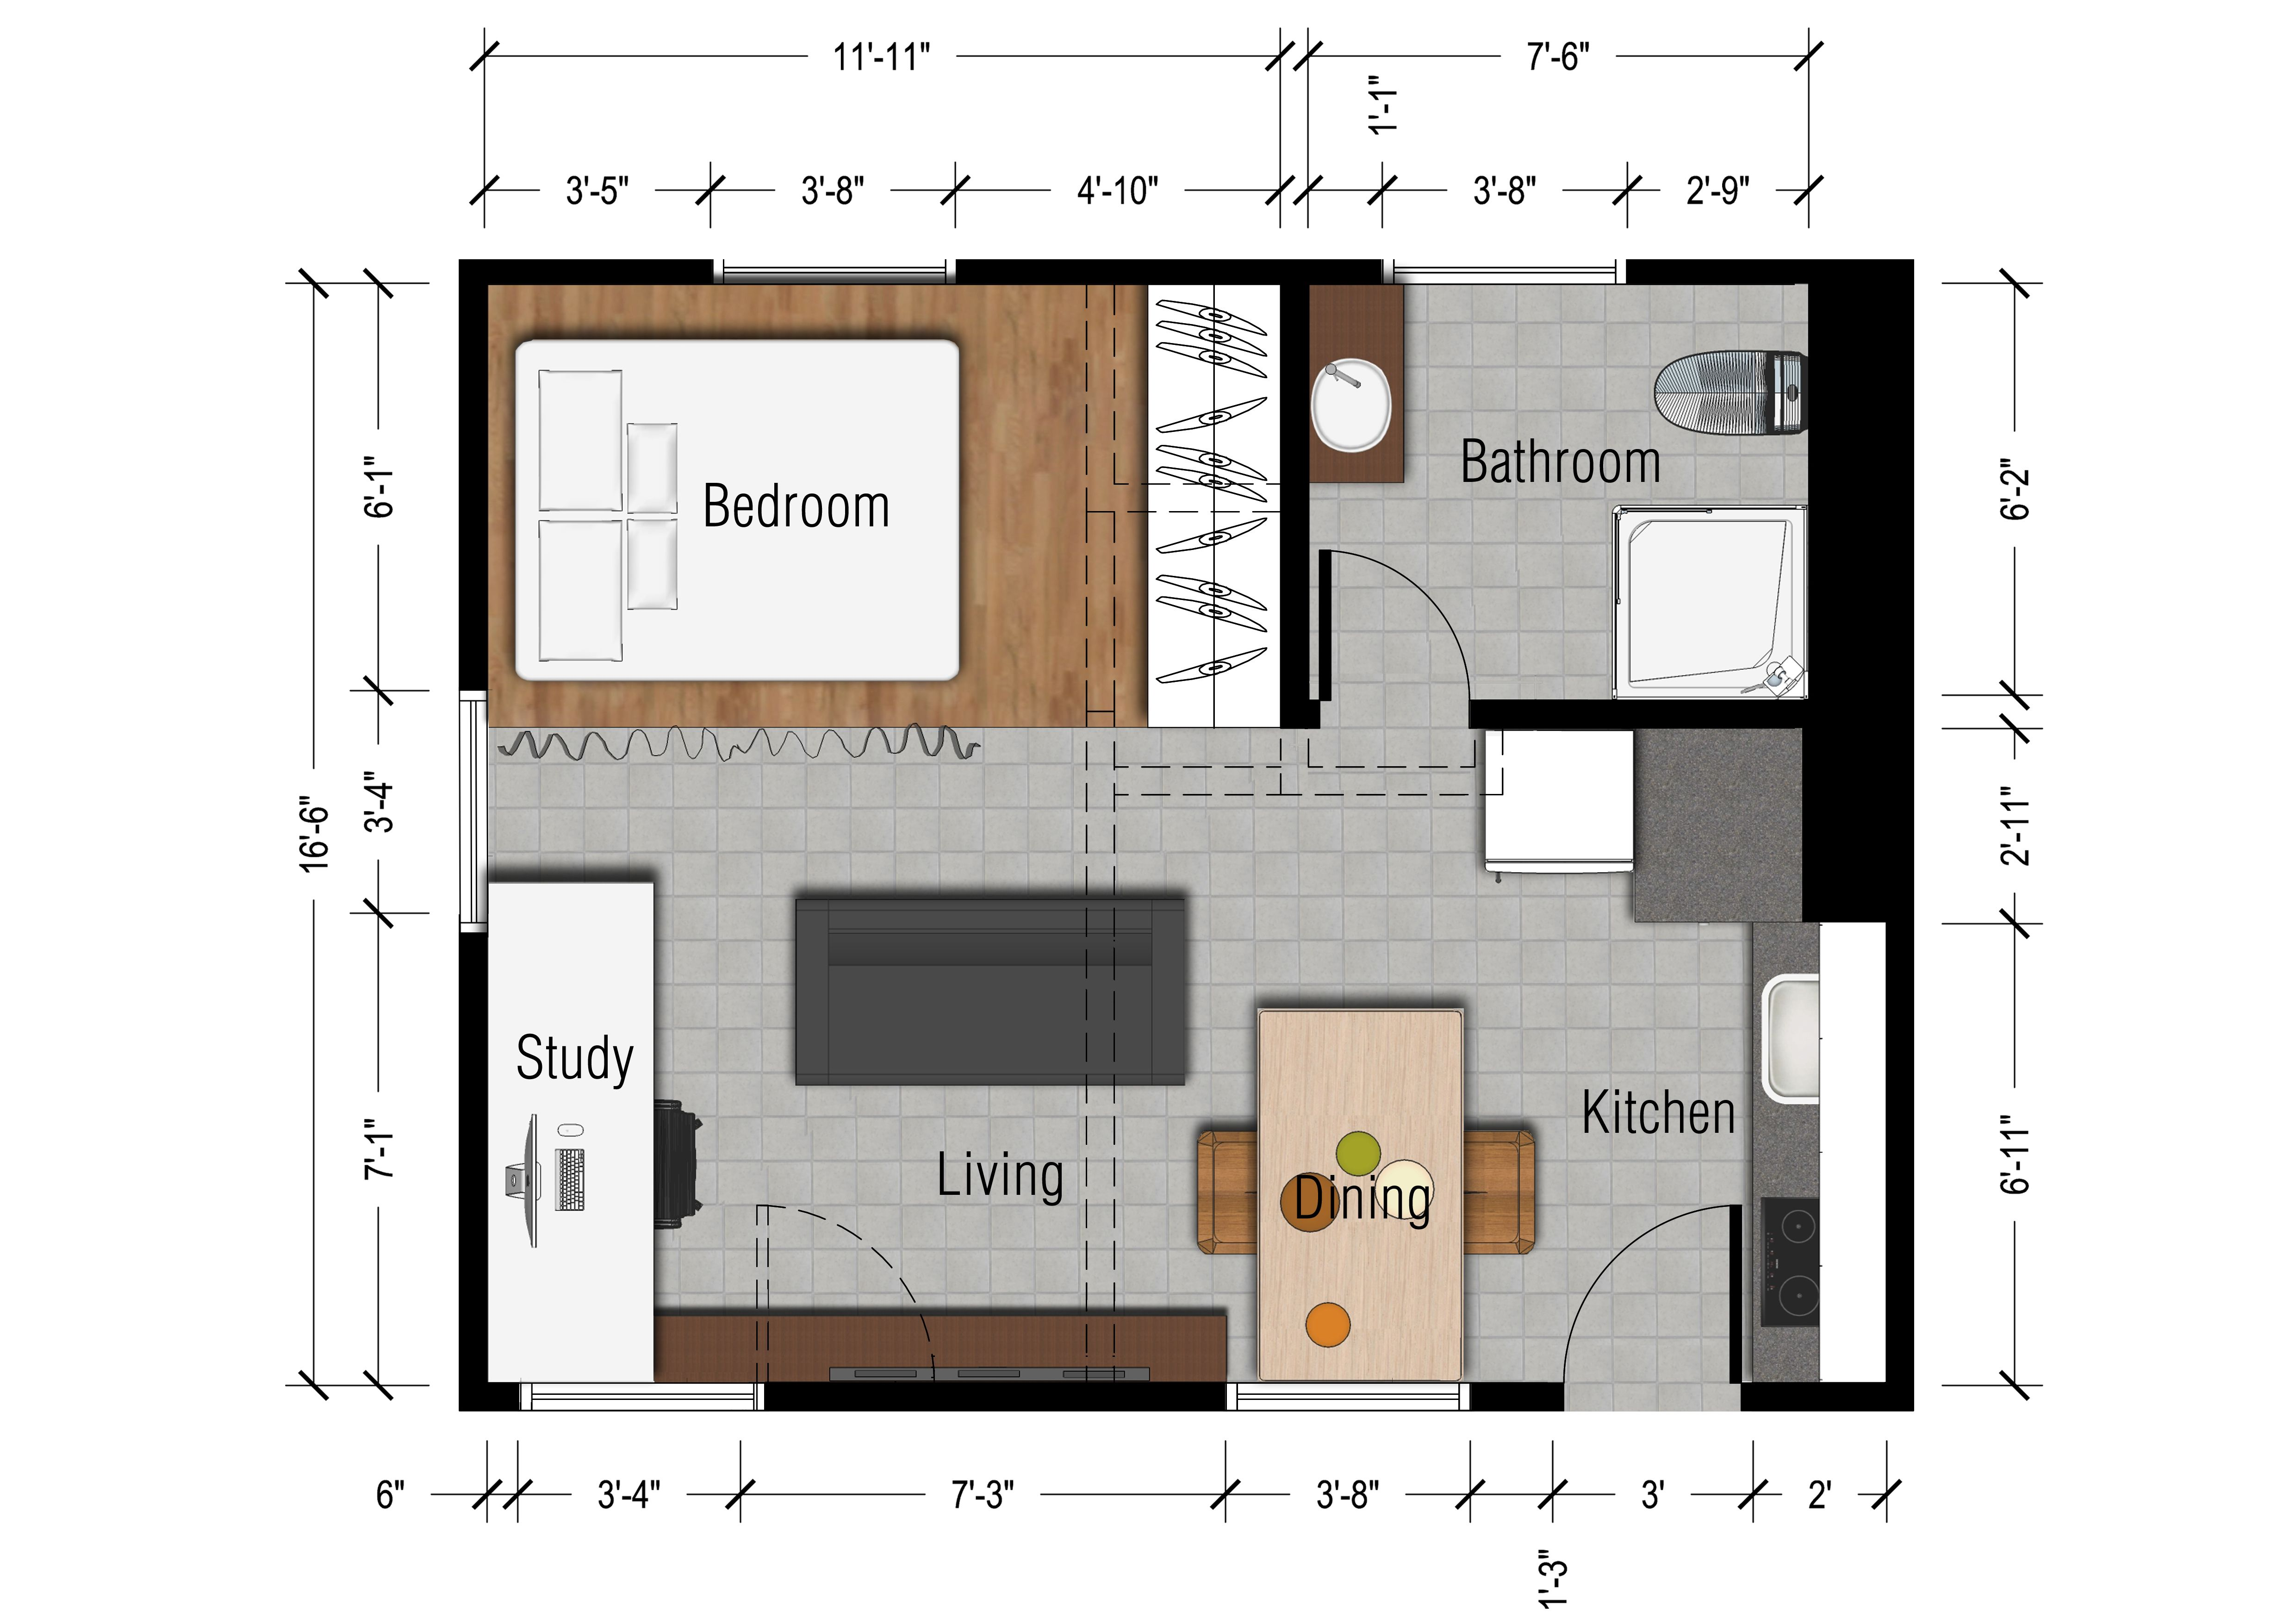 Studio apartments floor plan 300 square feet location for Small apartment arrangement ideas